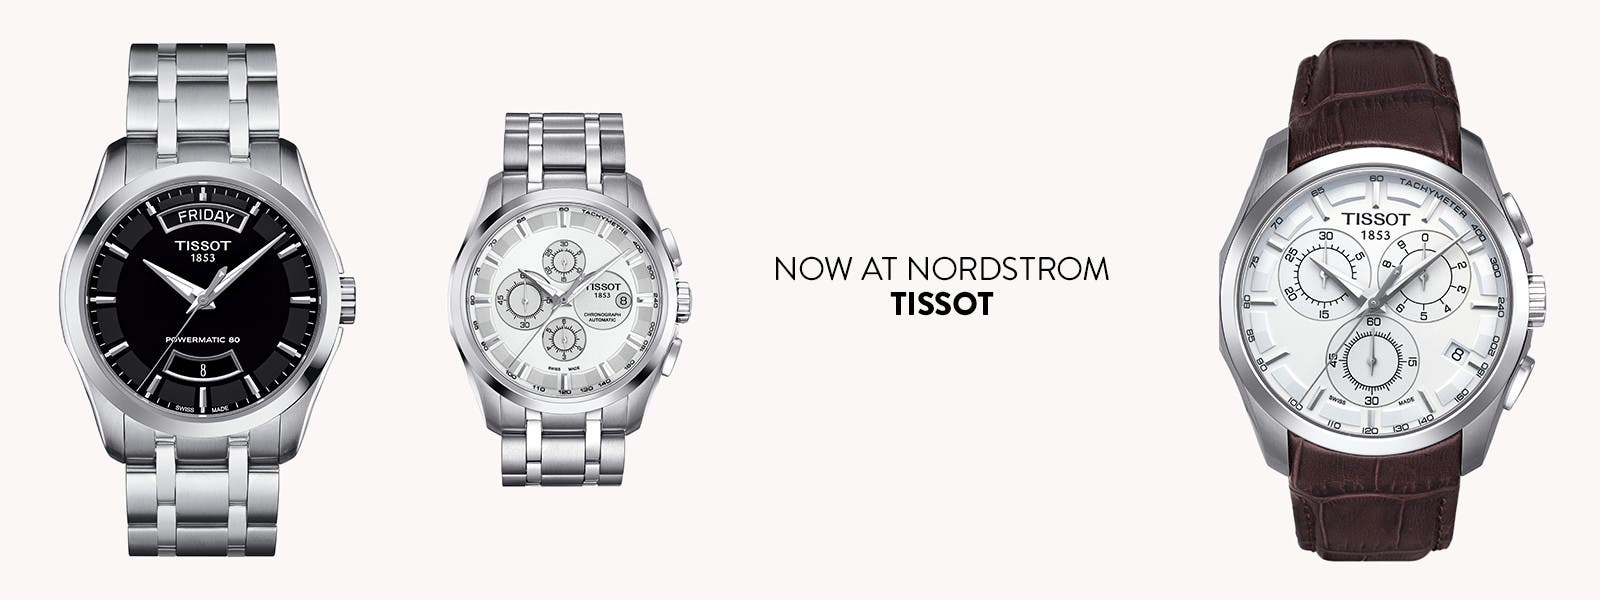 men s white watches watches for men nordstrom now at nordstrom tissot watches